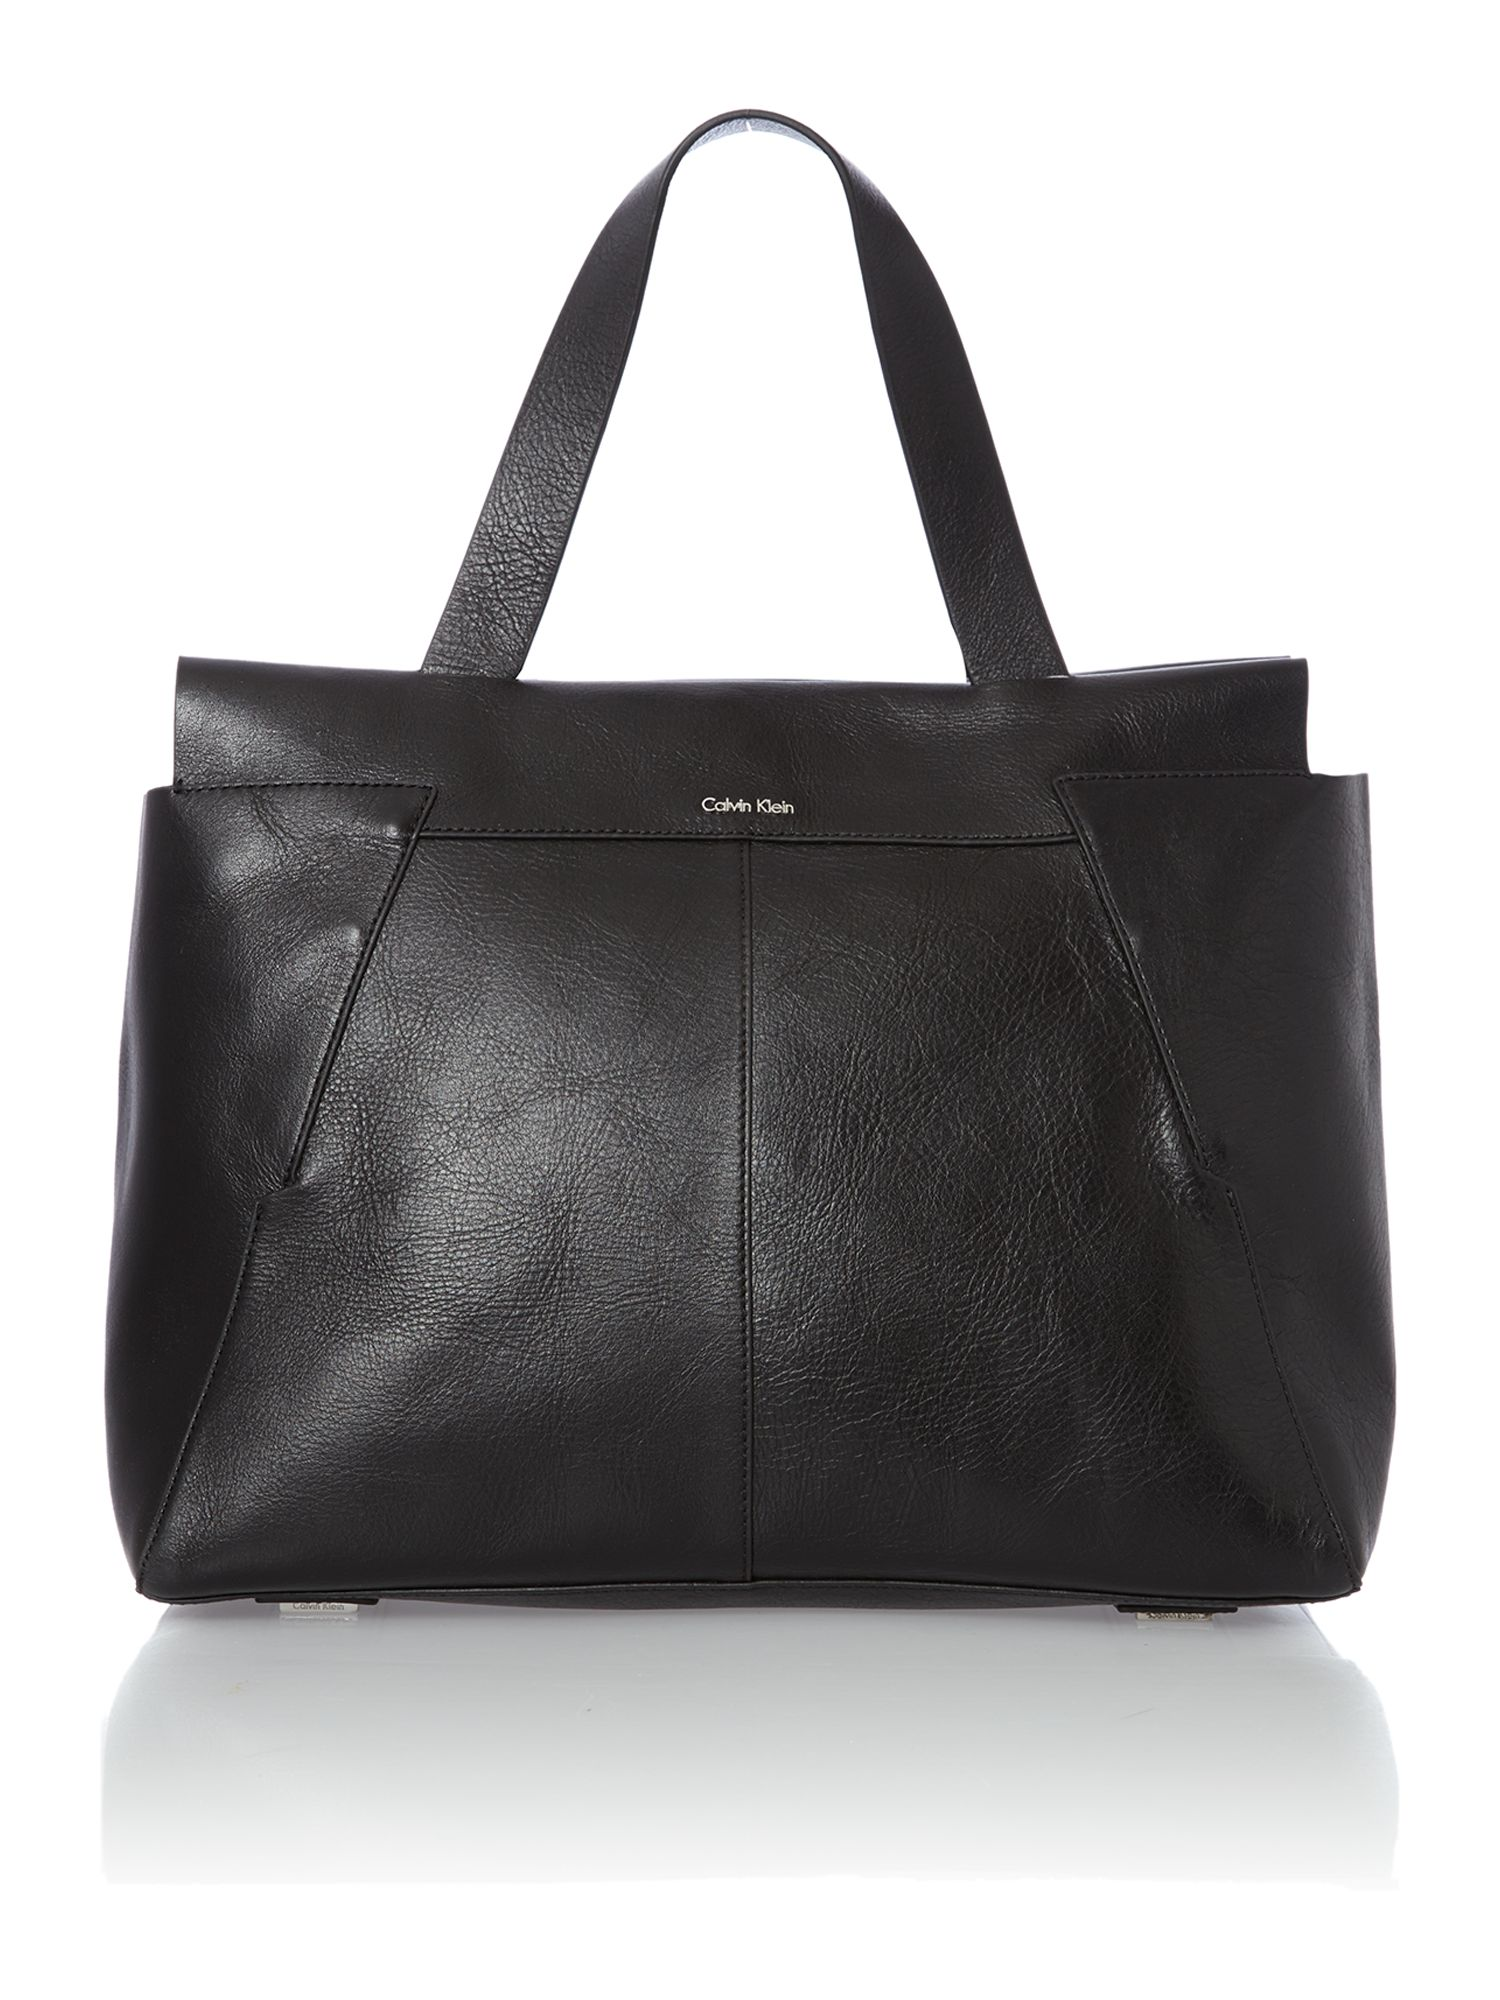 Olivia black large tote bag